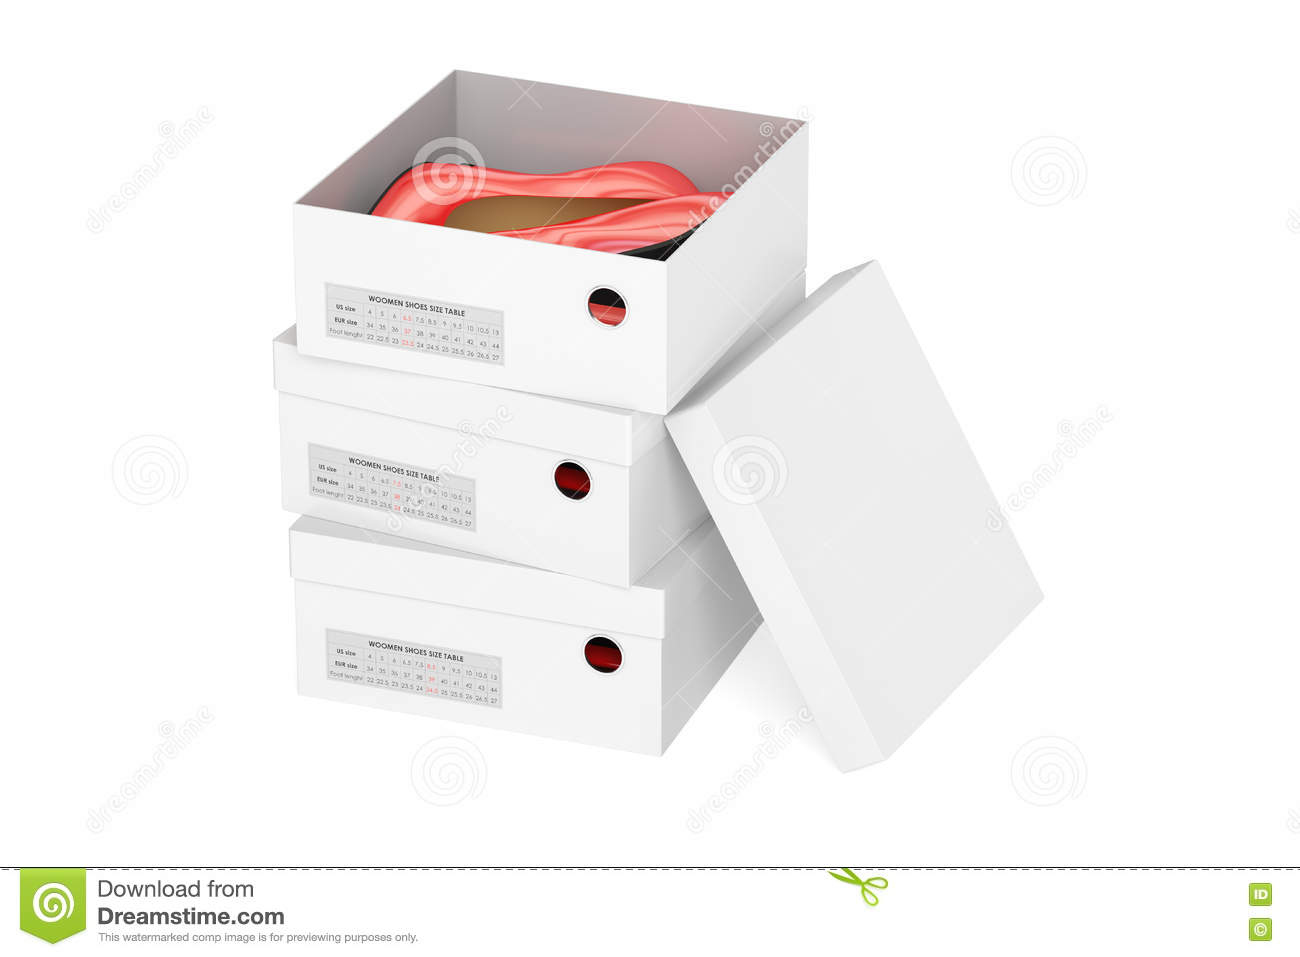 Red high heel shoes in the shoeboxes, 3D rendering